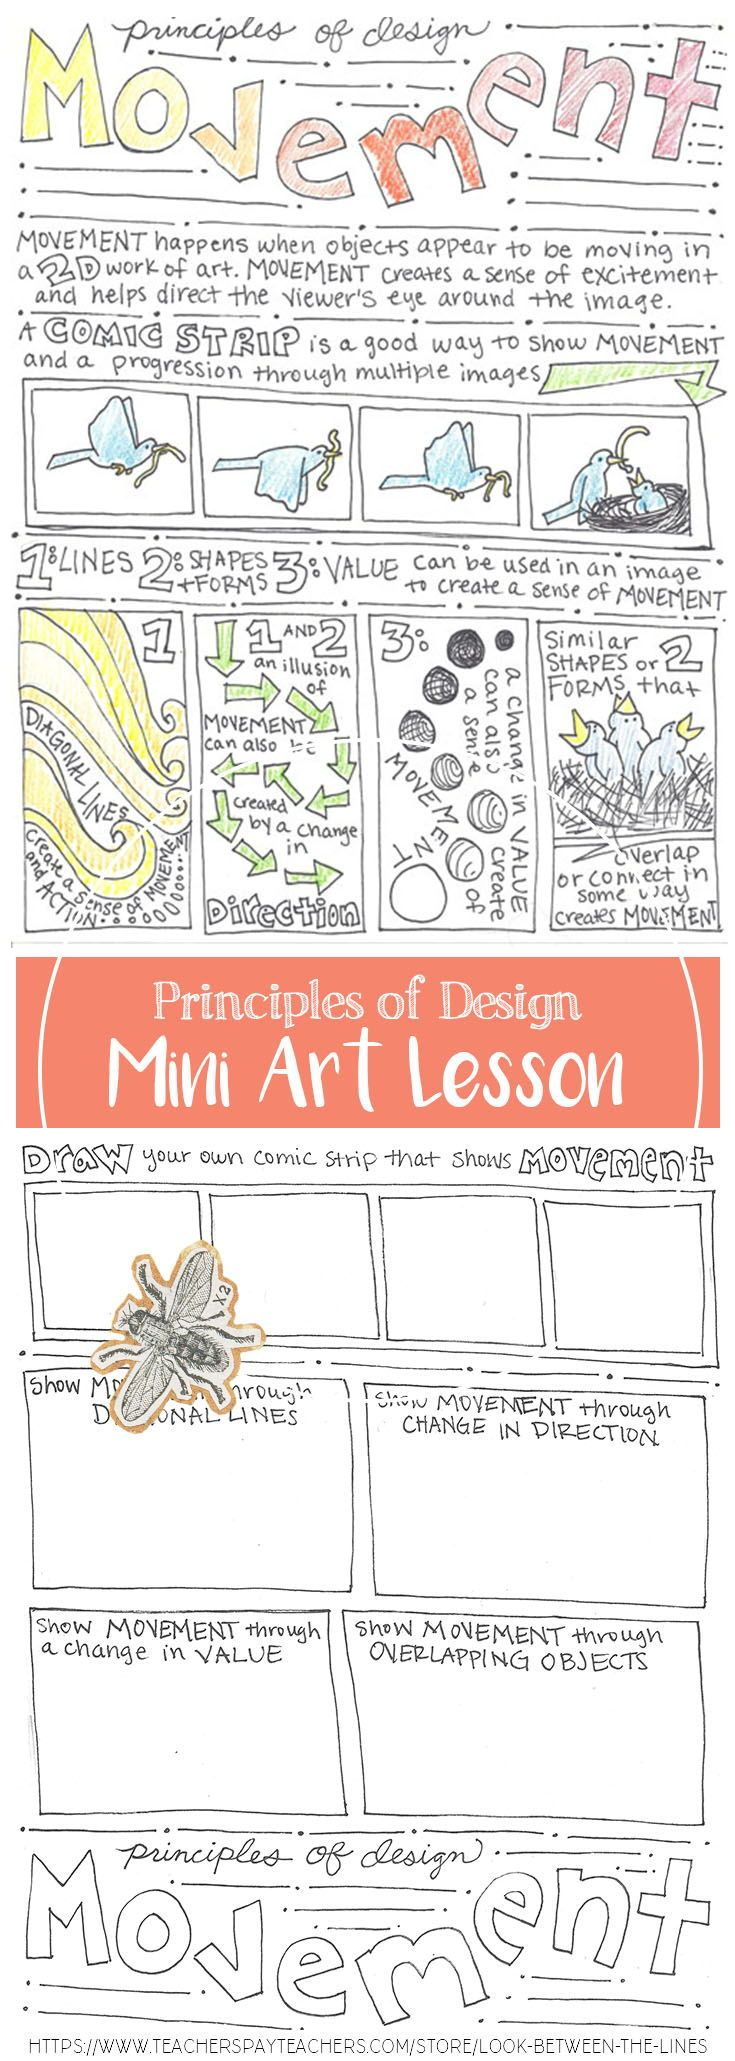 This mini art lesson covers the principle of design, movement. This printable worksheet is back and front. The back is full of activities for the students to complete to test their understanding of the information covered on the front. #principlesofdesign #artlesson #printable #art